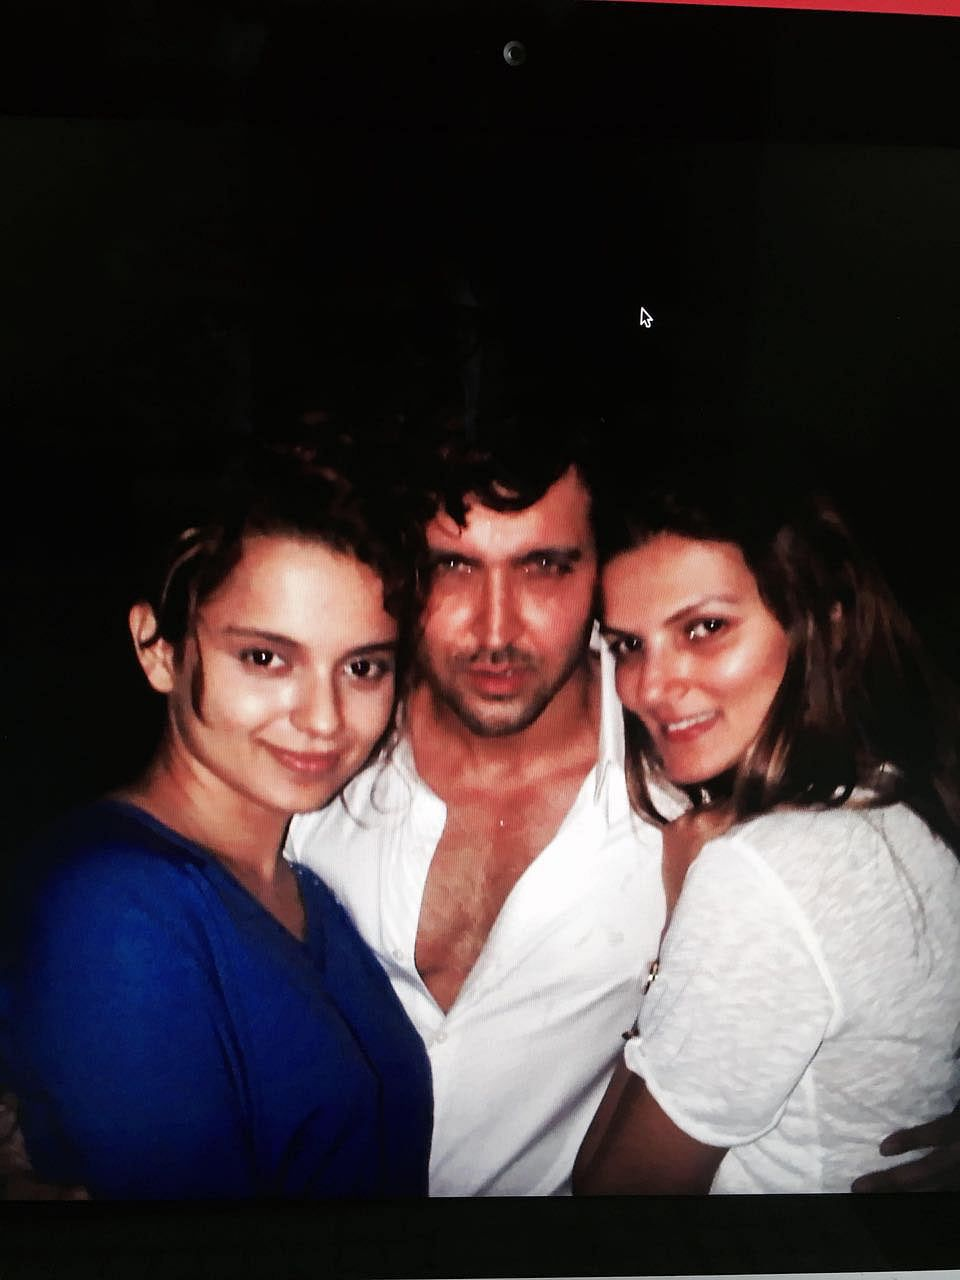 Hrithik Roshan seen with Kangana Ranaut from the same party